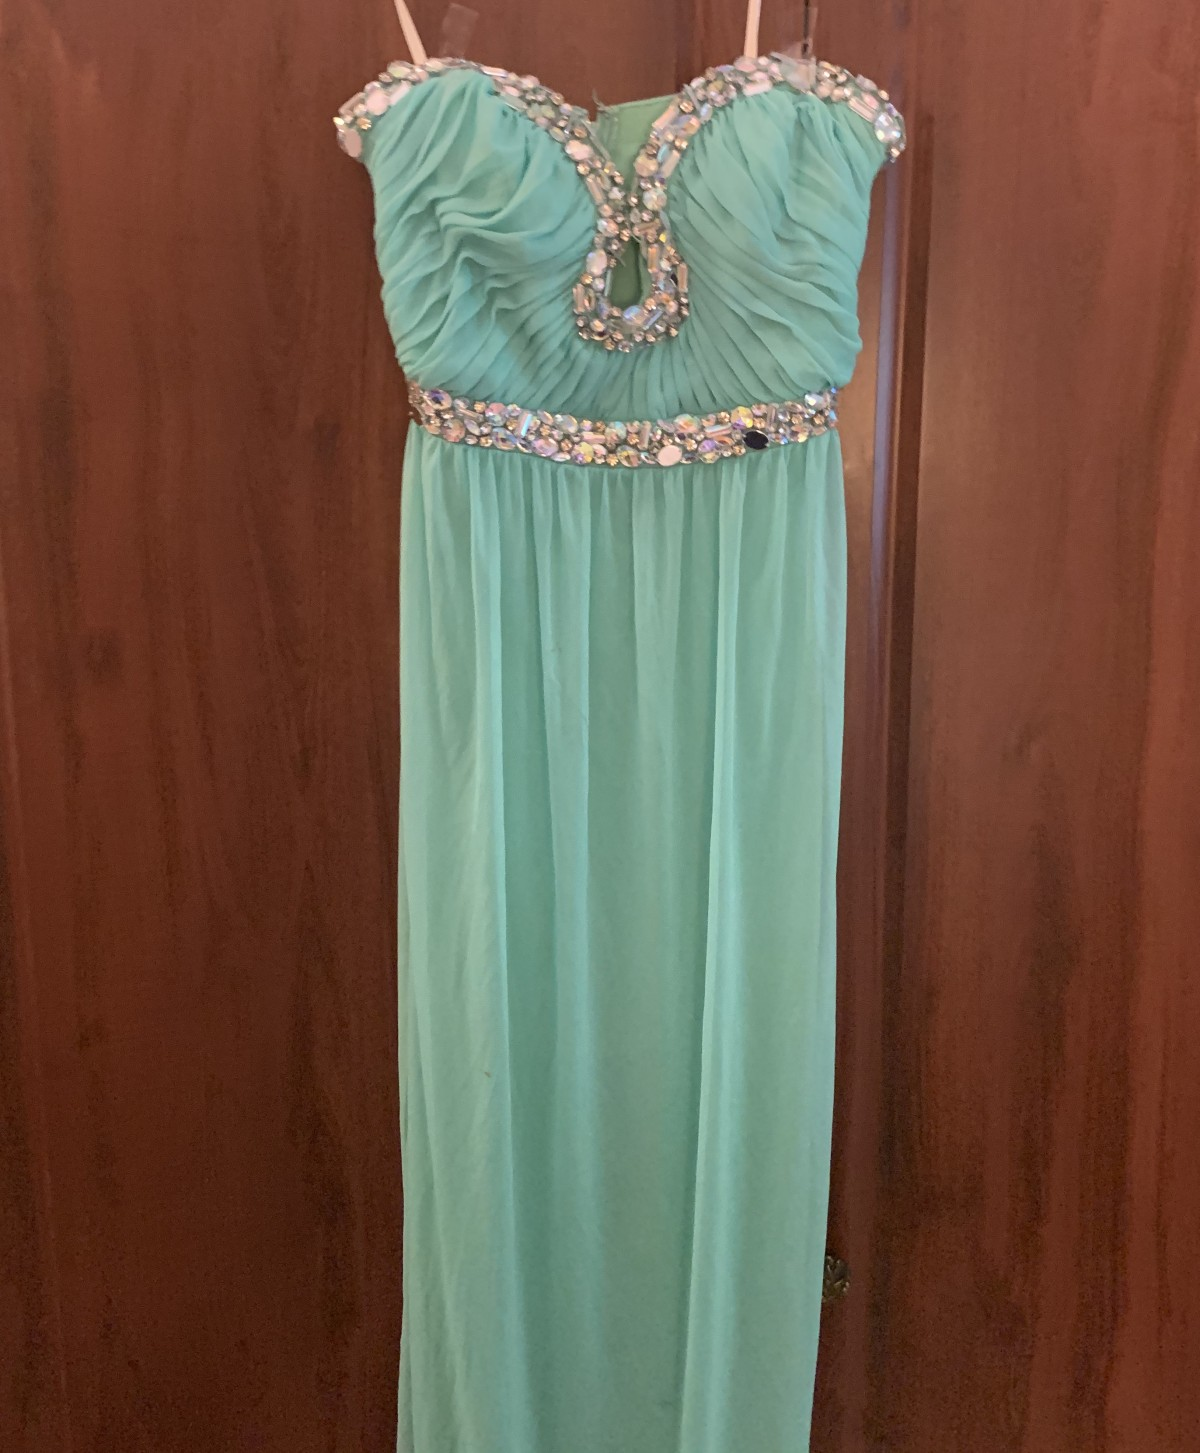 Turquoise evening gown